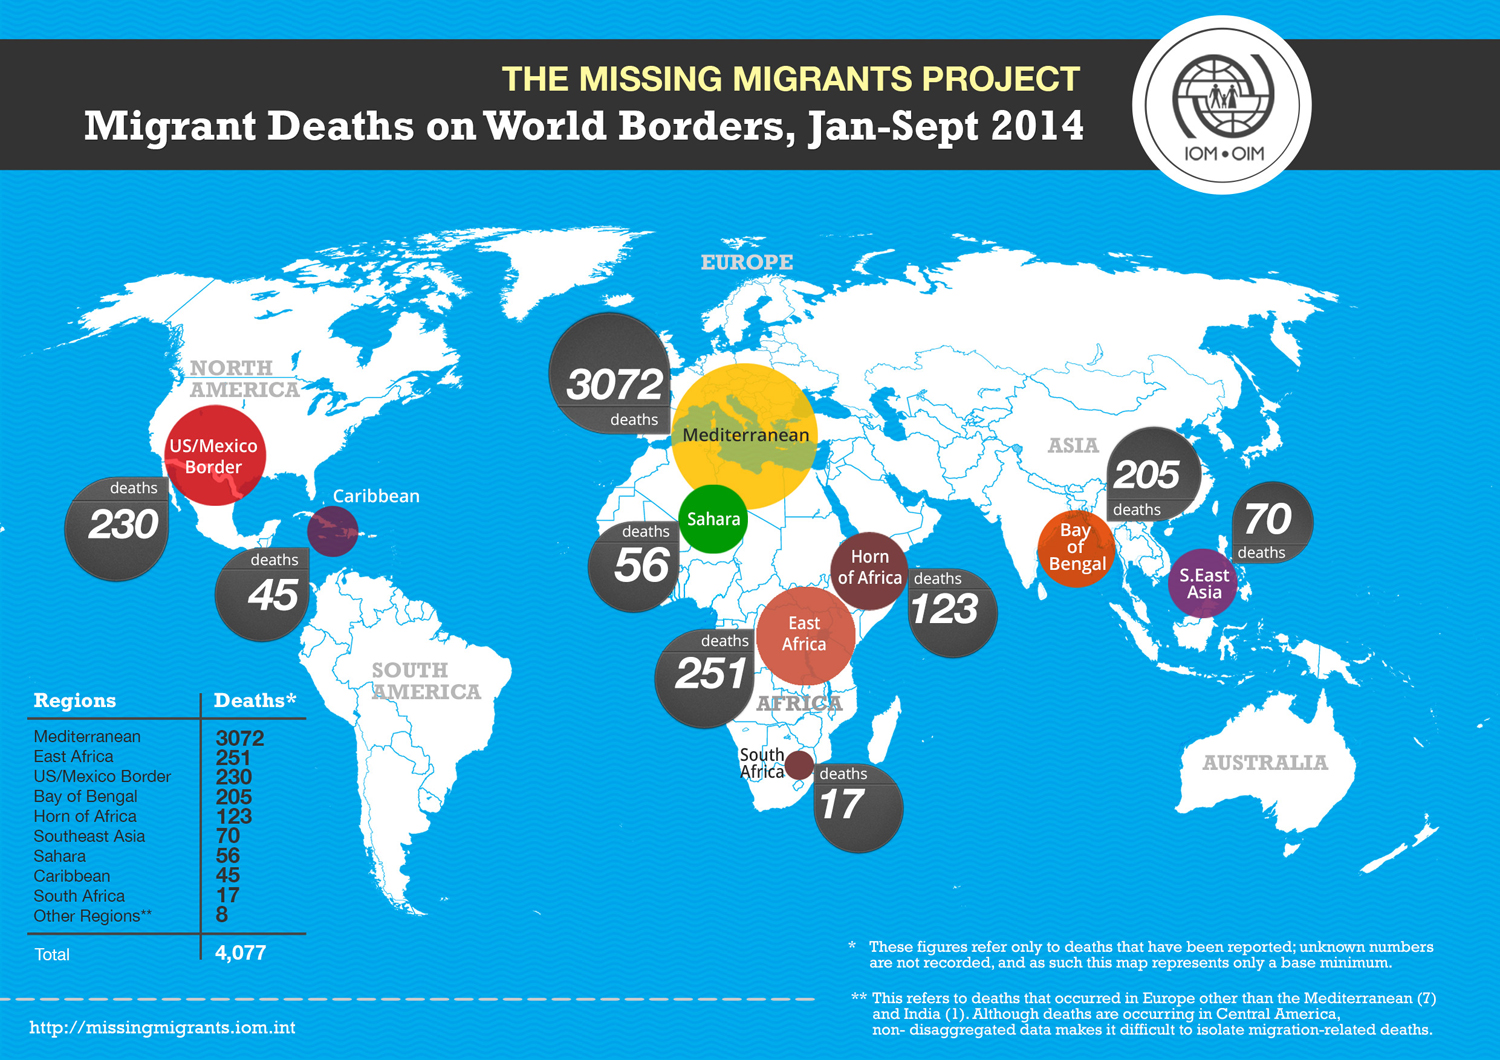 https://i2.wp.com/www.iom.int/files/live/sites/iom/files/pbn/photos/MissingMigrantsProject2014.jpg